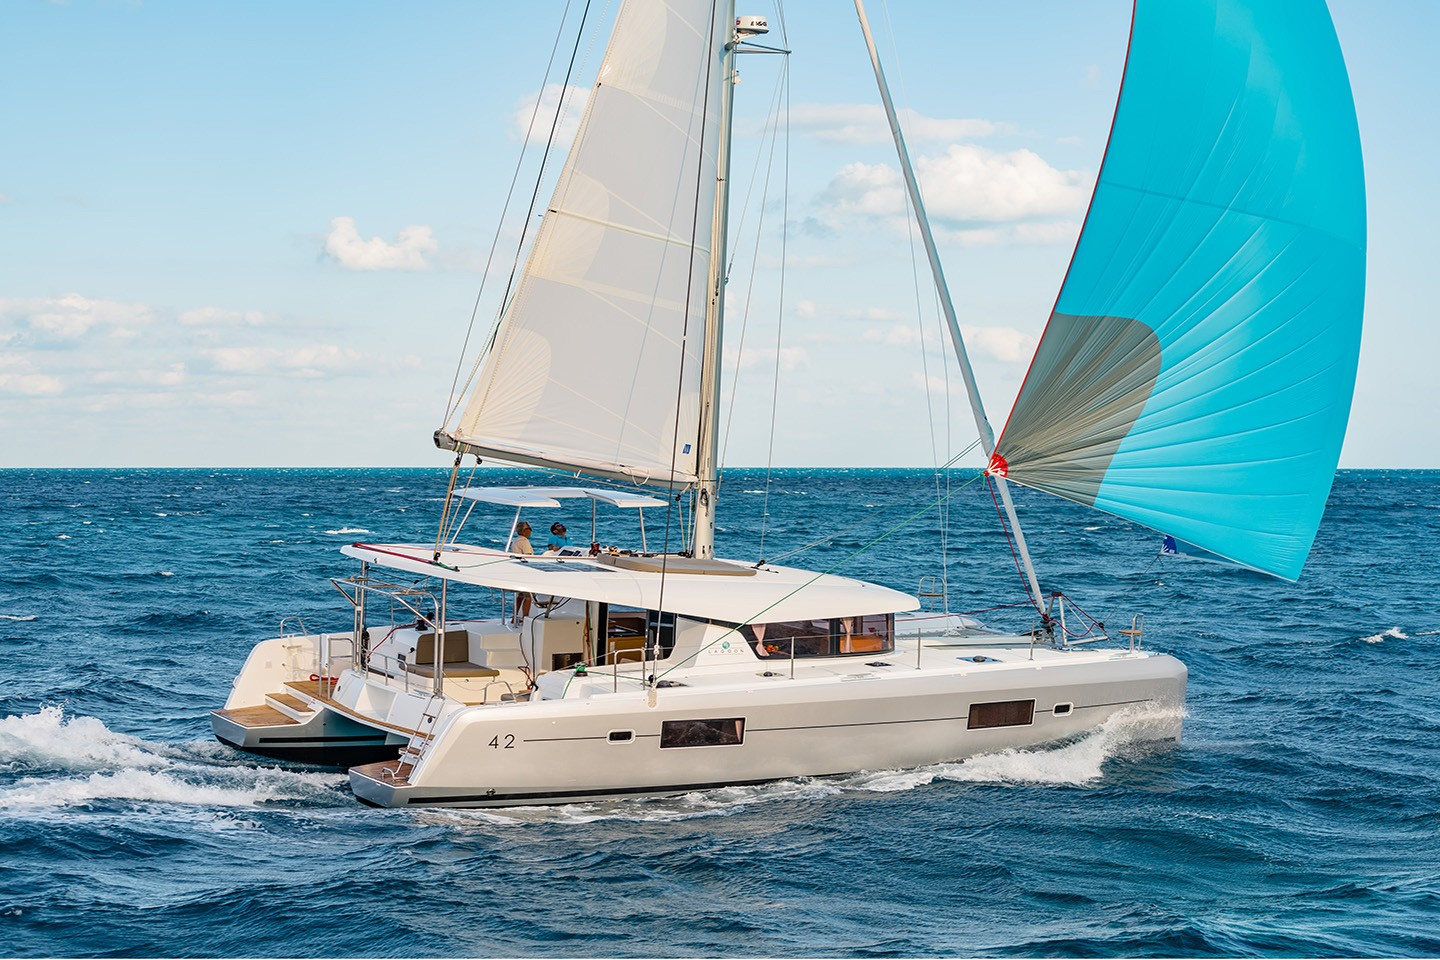 Albertina II Dufour catamaran  48     for all available weeks 20% OFF ^ valid till 31.05.2021